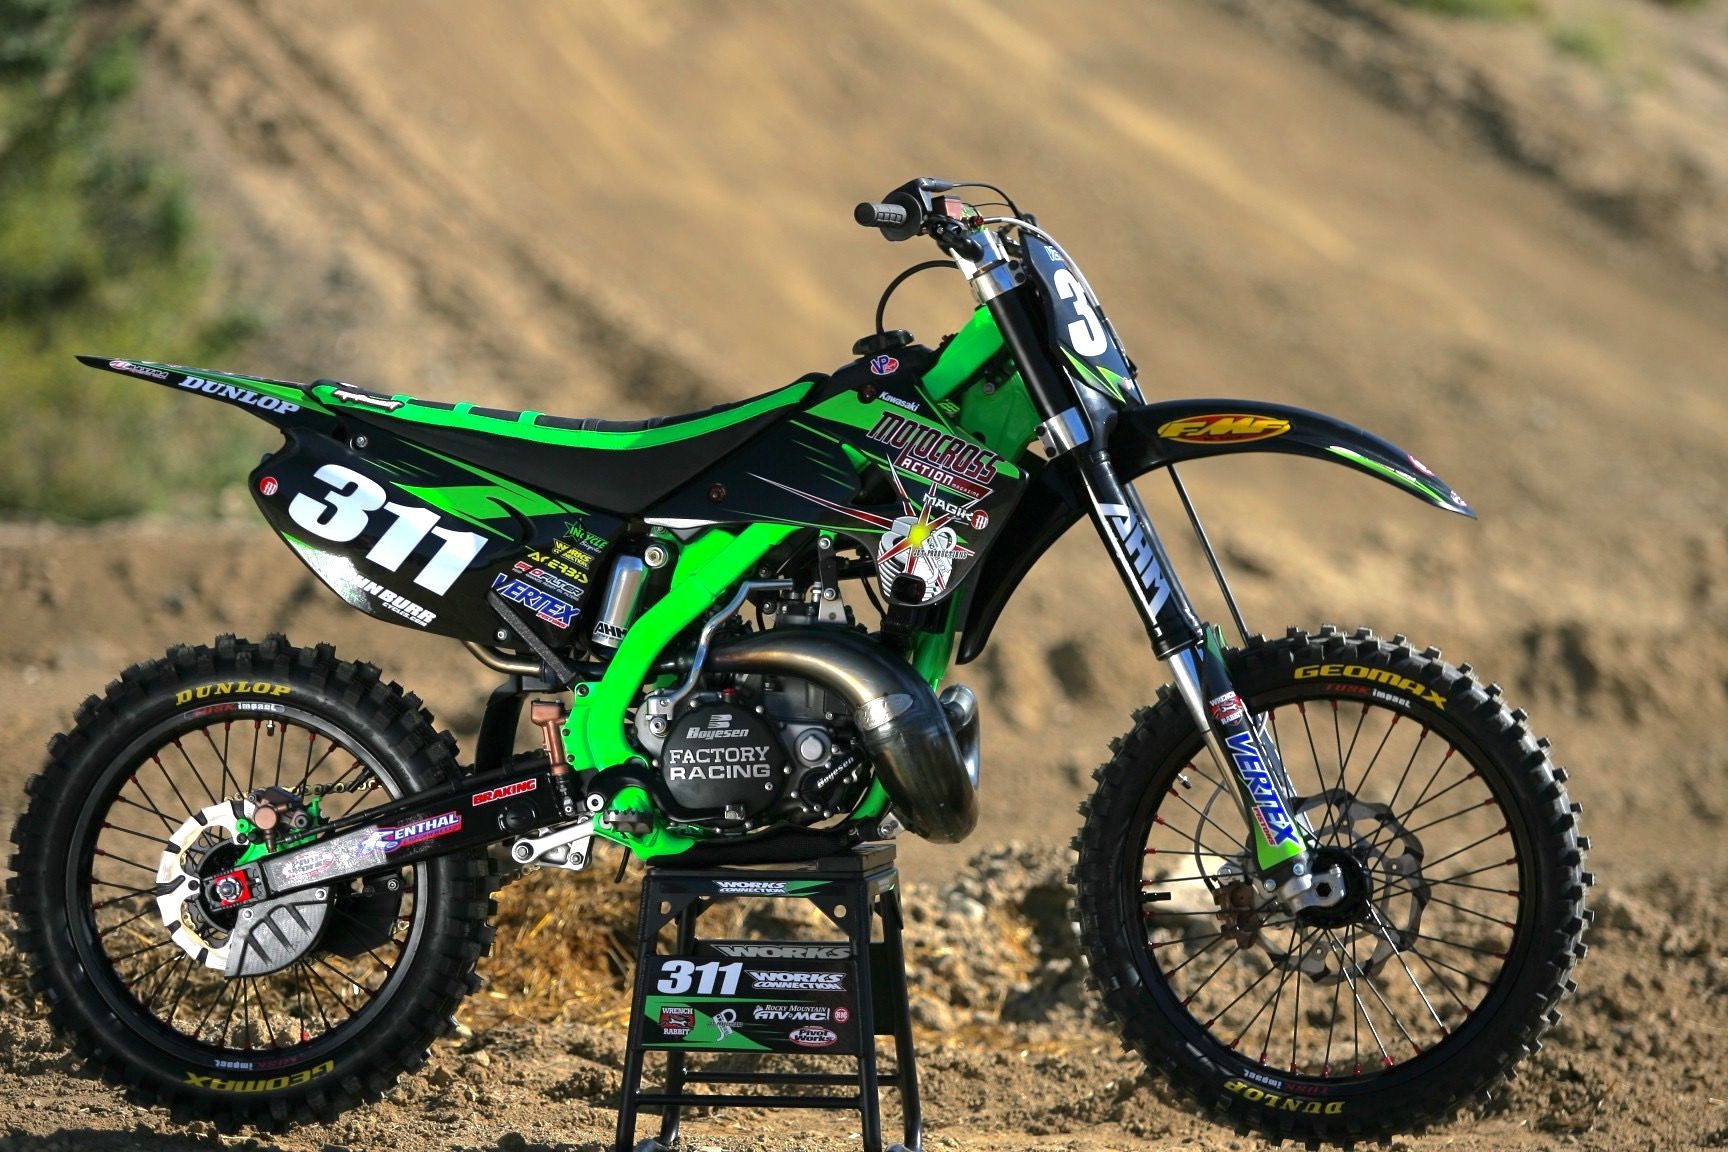 kawasaki kx125 dirt bikes pinterest. Black Bedroom Furniture Sets. Home Design Ideas